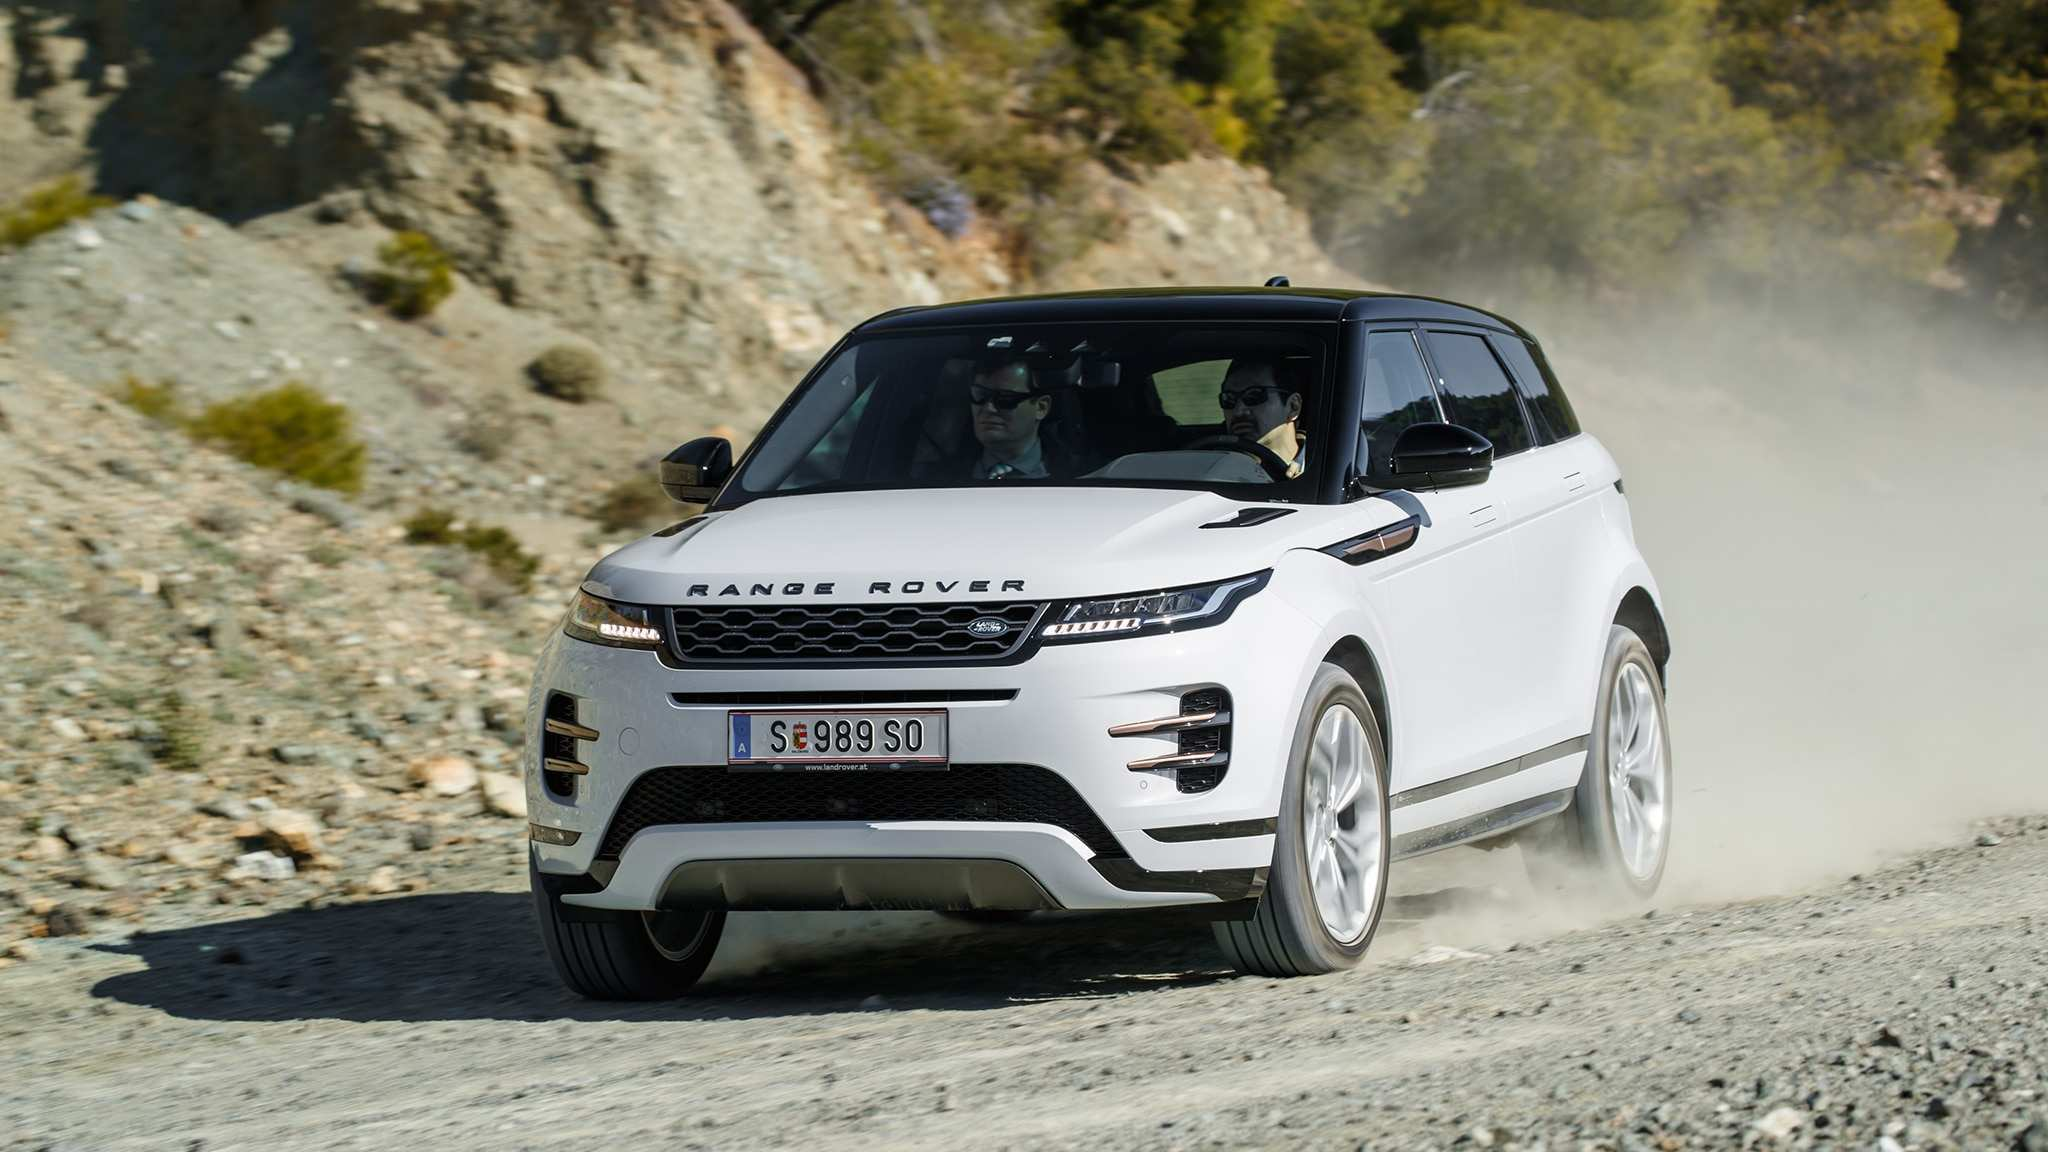 14 New 2020 Range Rover Evoque Xl Concept And Review